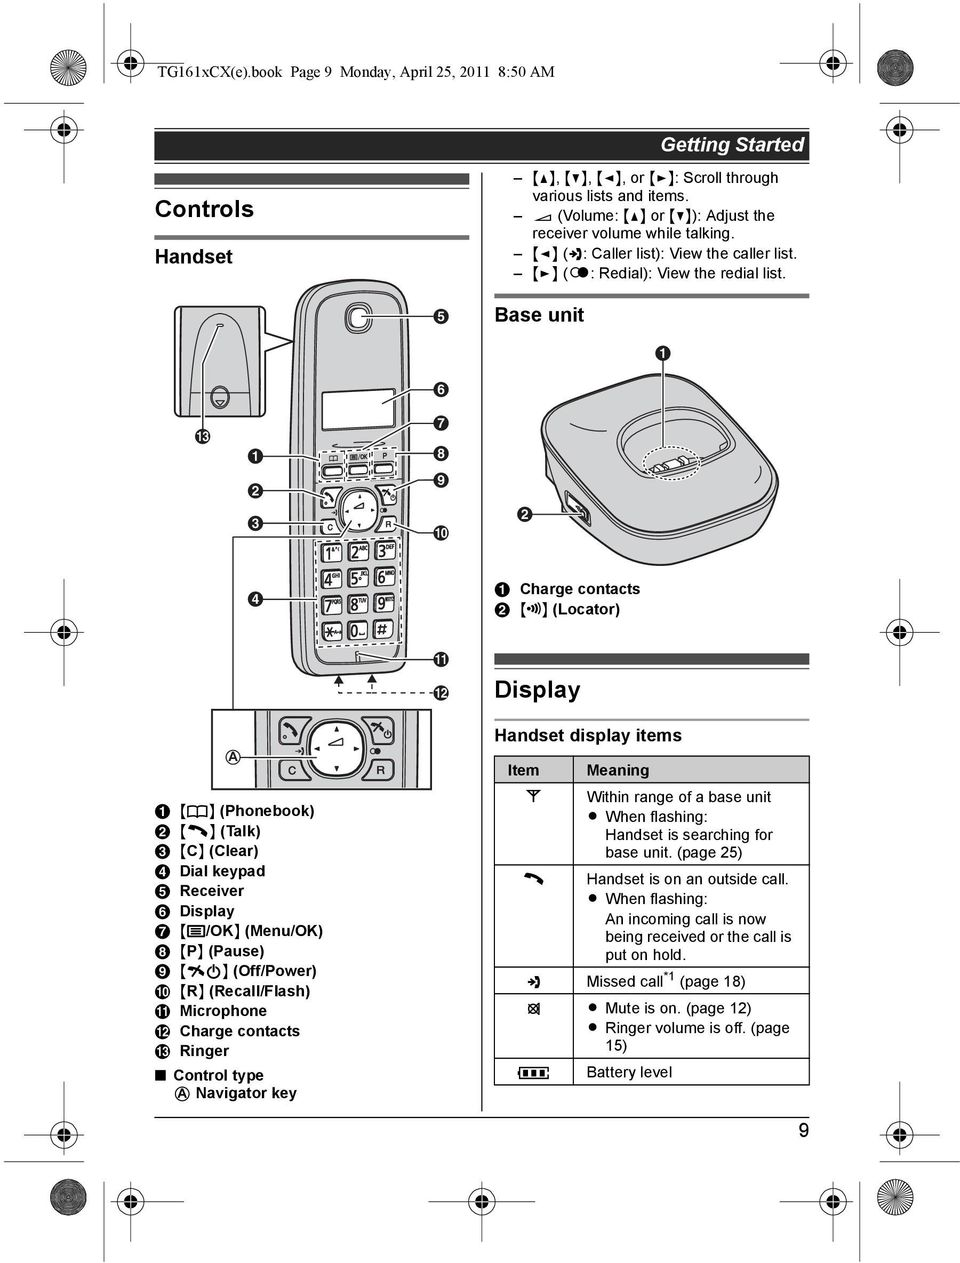 E Base unit A F M A B C G H I J B D A Charge contacts B {x} (Locator) K L Display A A {k} (Phonebook) B {C} (Talk) C {C} (Clear) D Dial keypad E Receiver F Display G {j/ok} (Menu/OK) H {P} (Pause) I